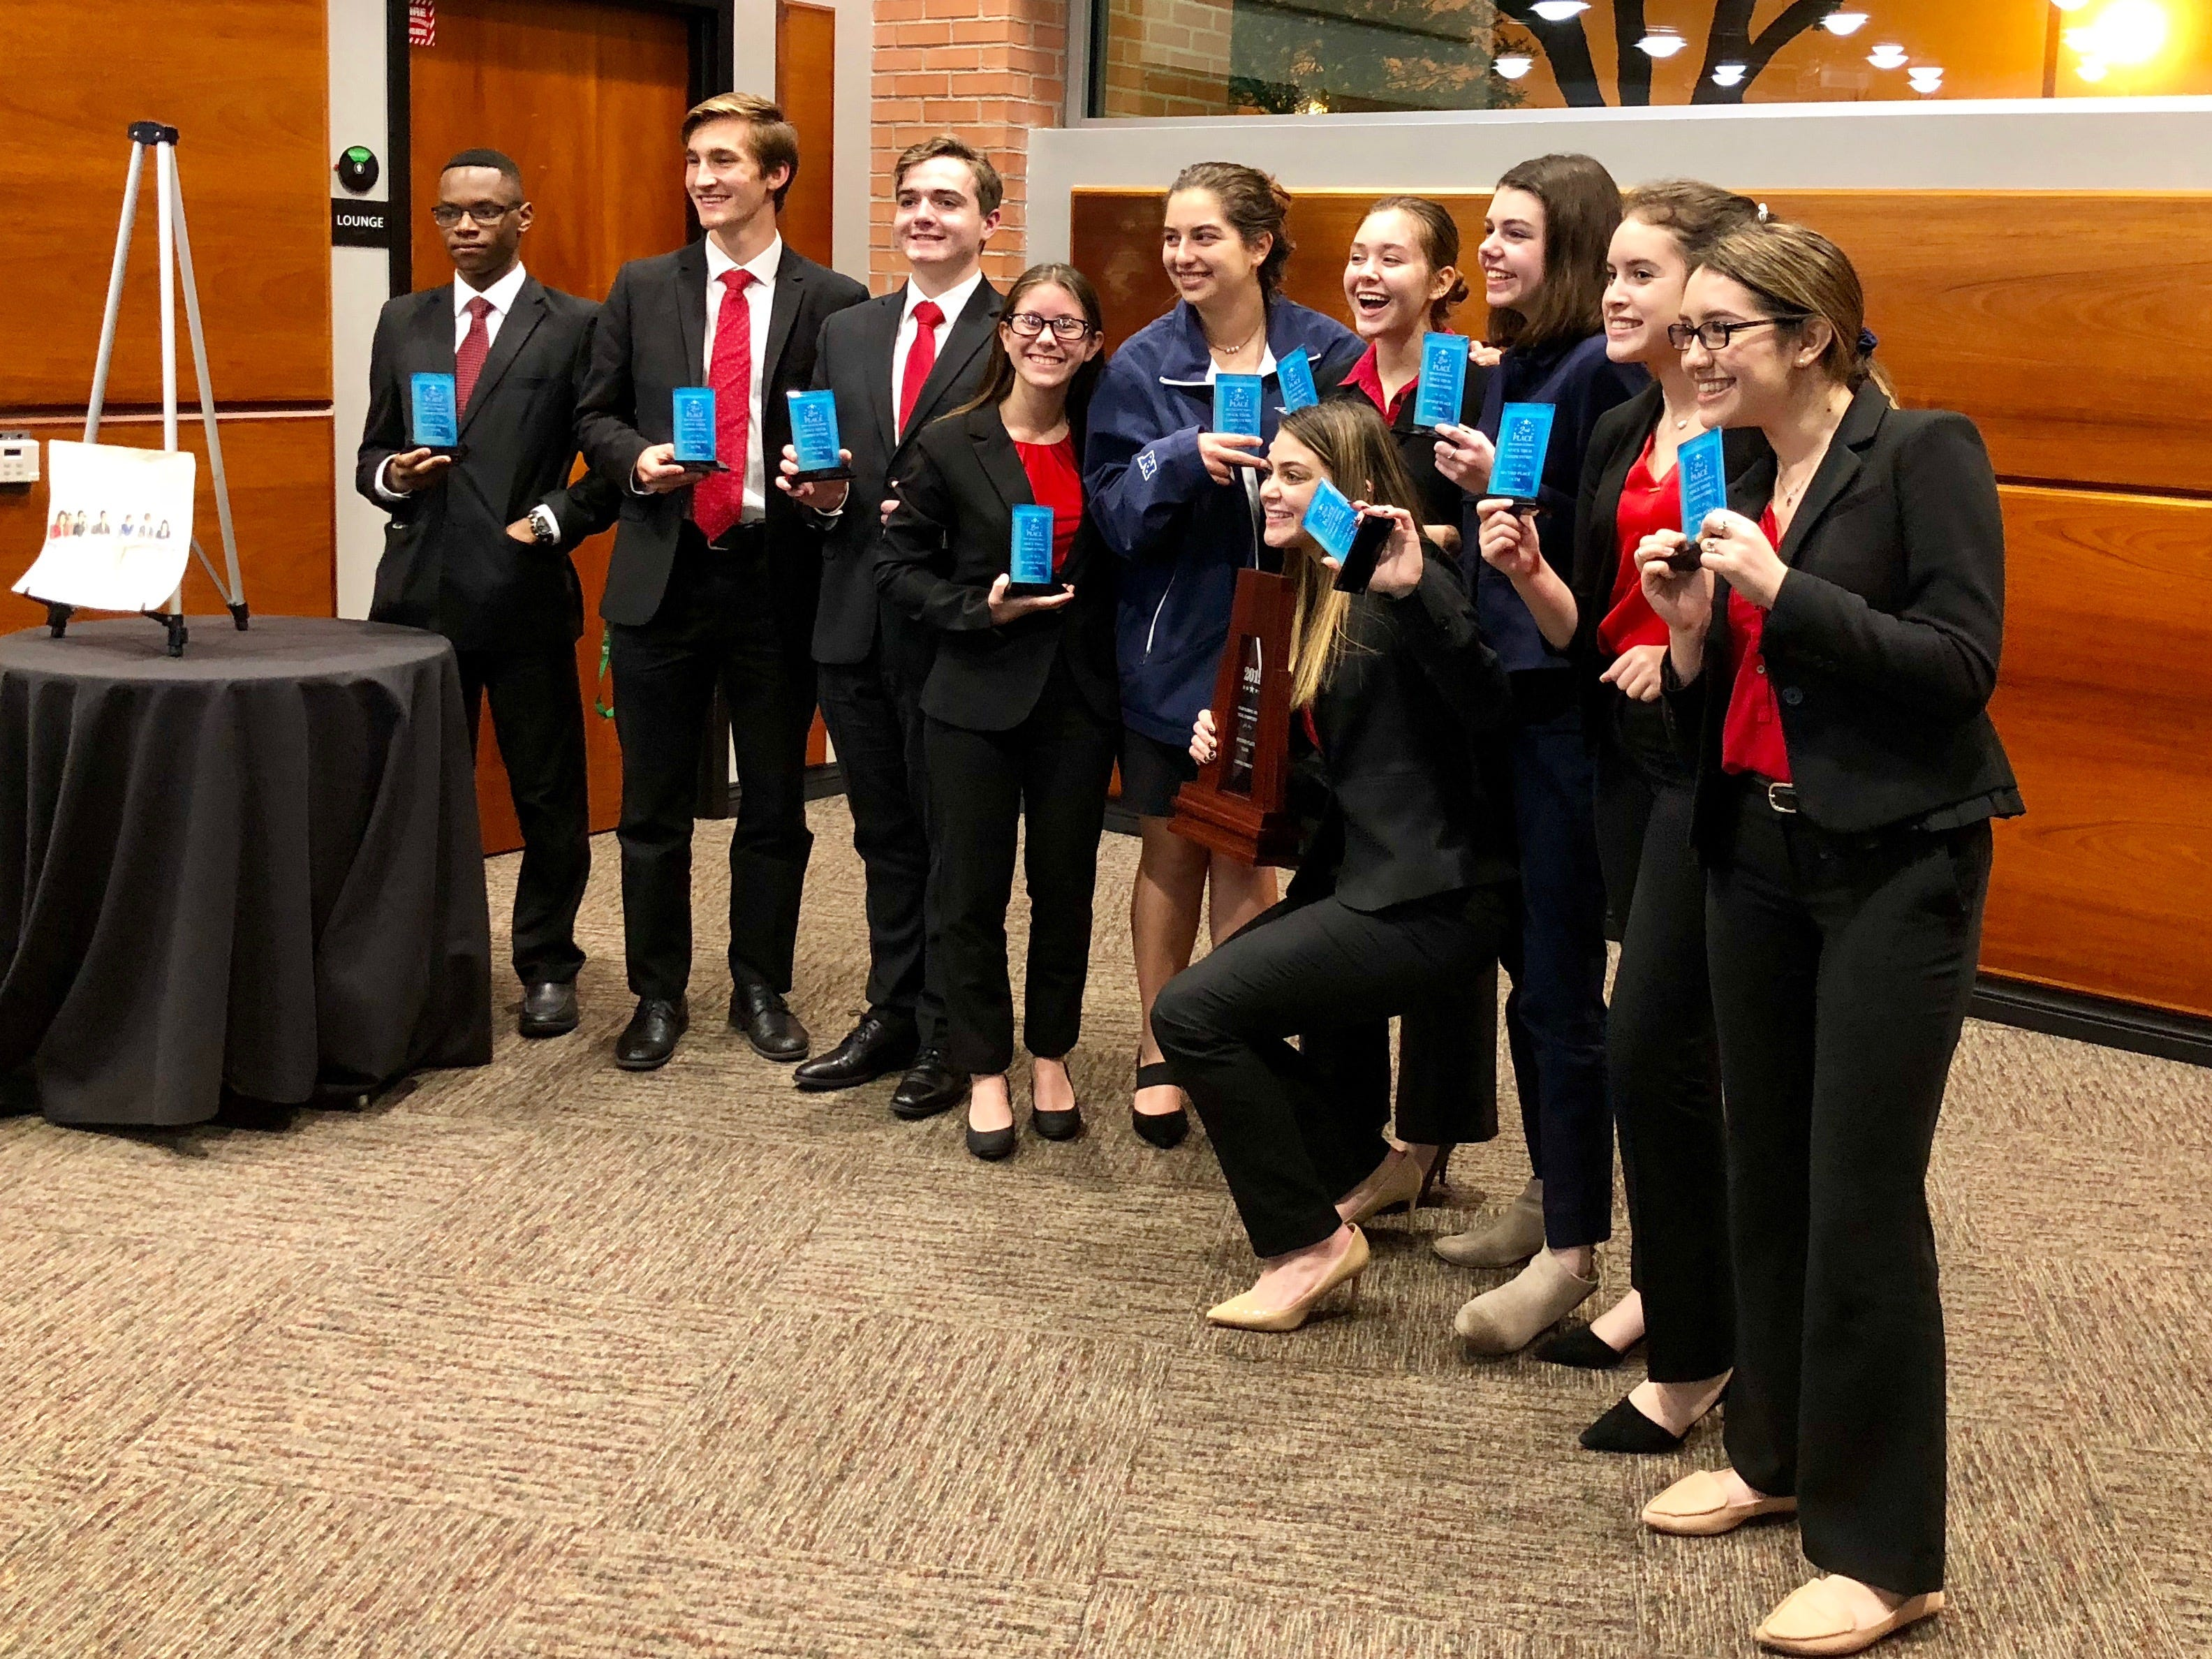 Students from Incarnate World Academy placed second in the 2019 mock trial competition.